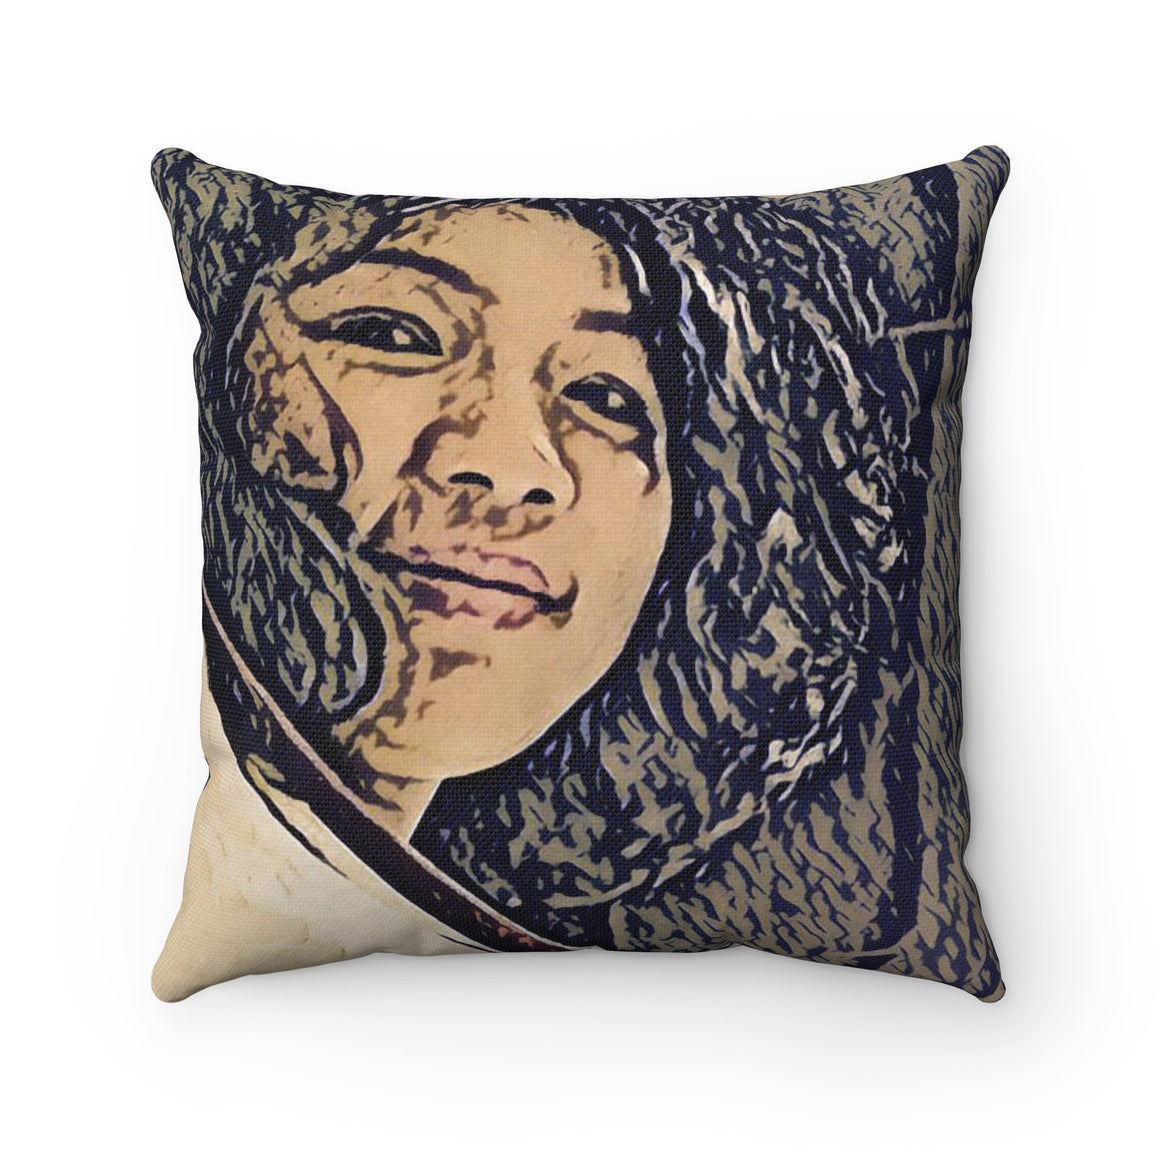 Levi Thang Vintage Face Design L Spun Polyester Square Pillow Case